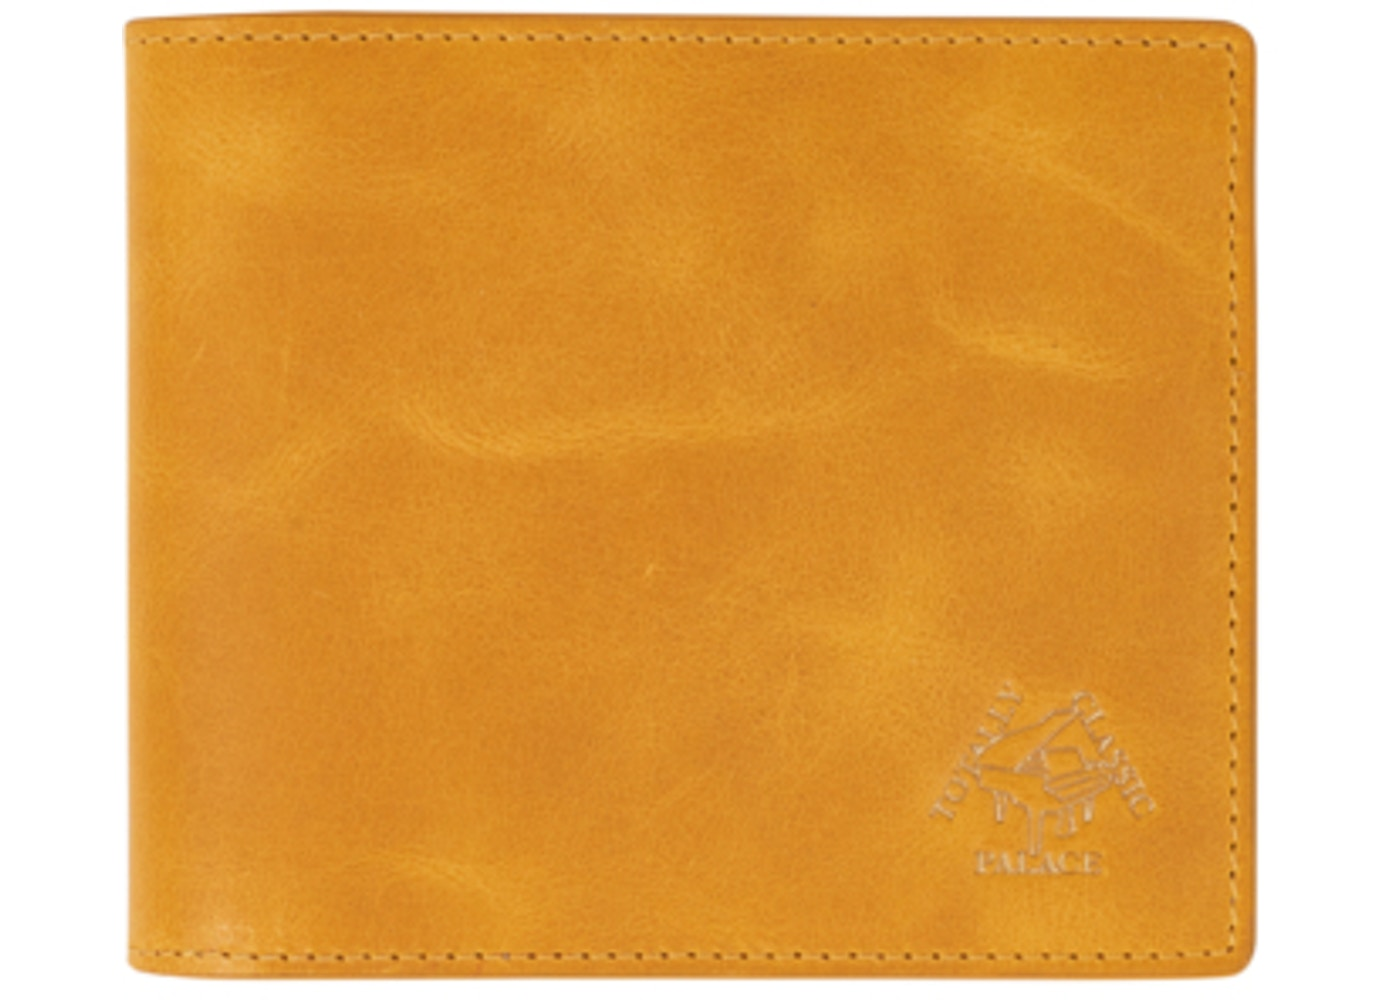 fc718606 Palace Leather Billfold Wallet Yellow. Leather